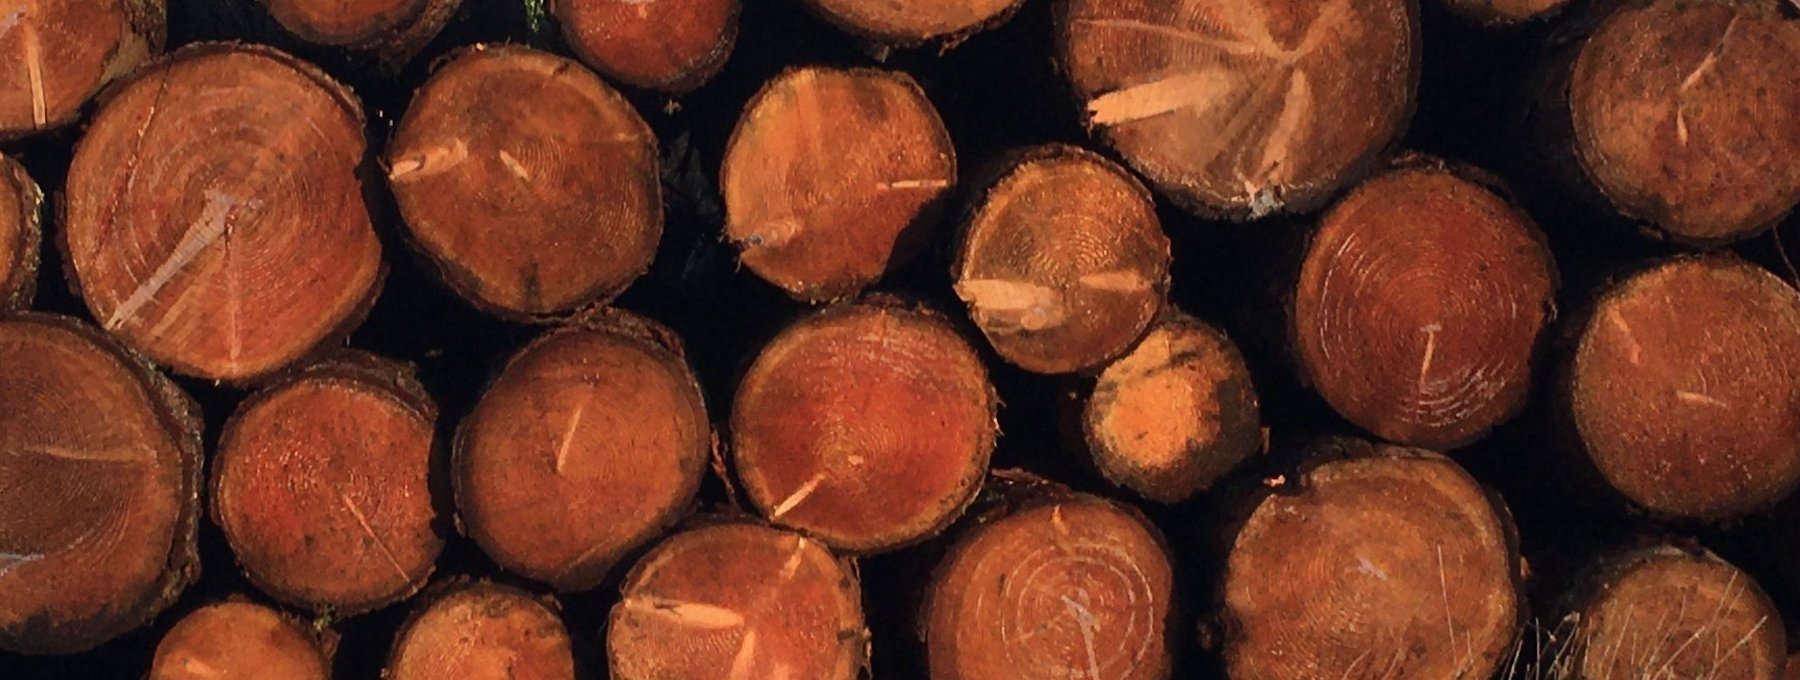 Murthly Sawmill round timber - Top quality softwood for making quality fencing products (© Murthly Estate)